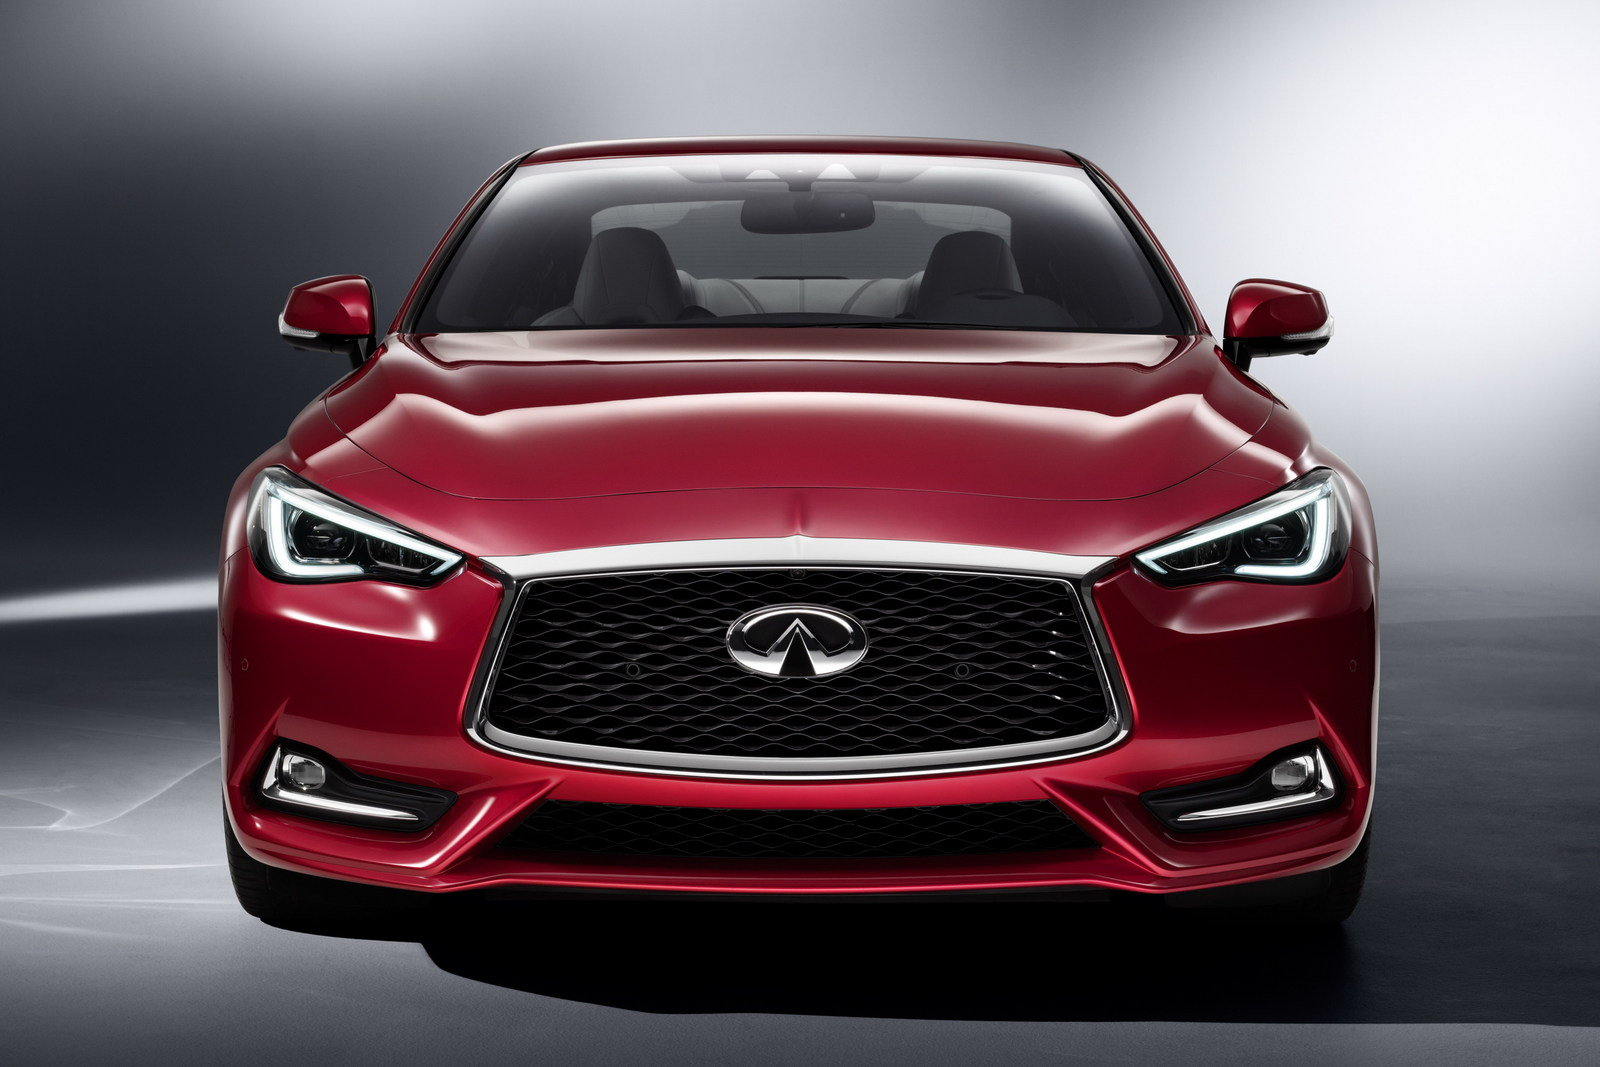 2017 infiniti q60 coupe picture 661450 car review top speed. Black Bedroom Furniture Sets. Home Design Ideas